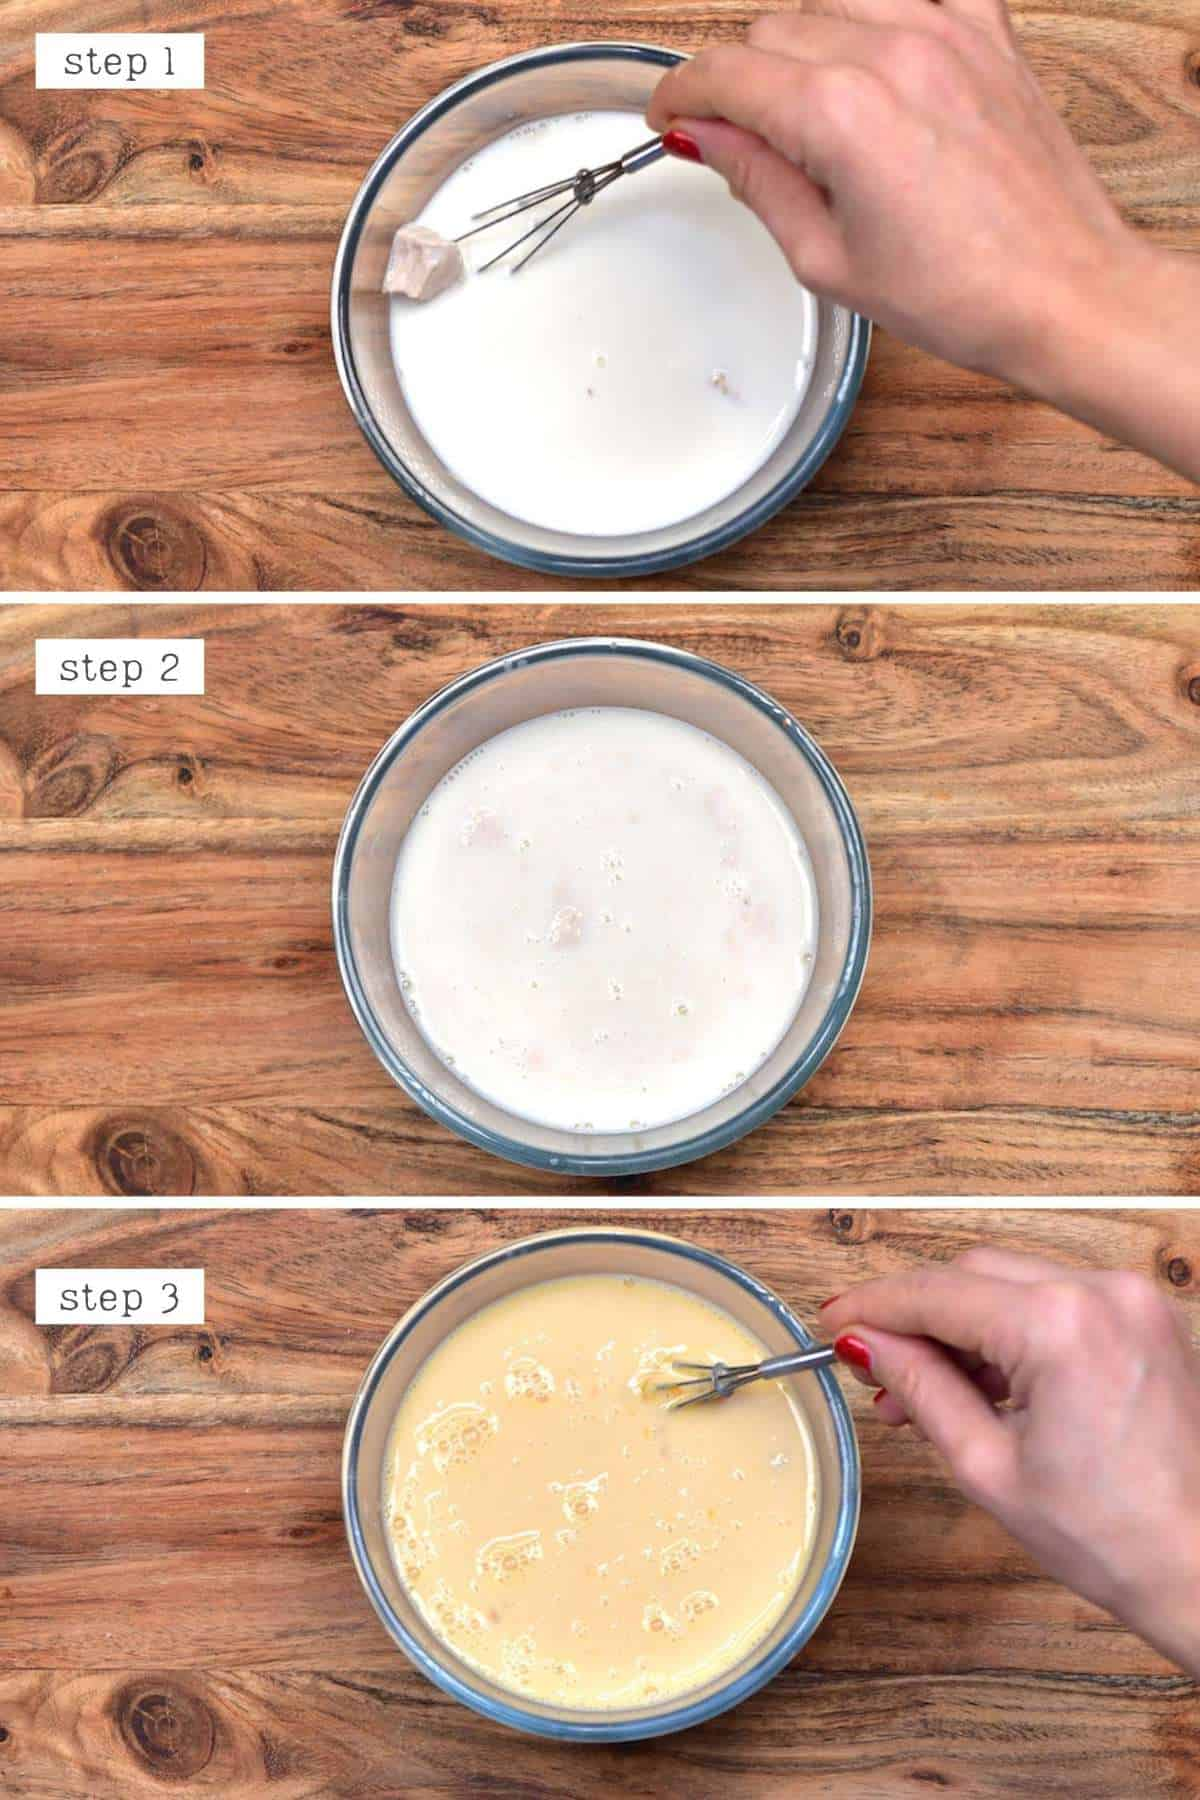 Mixing milk with yeast and eggs